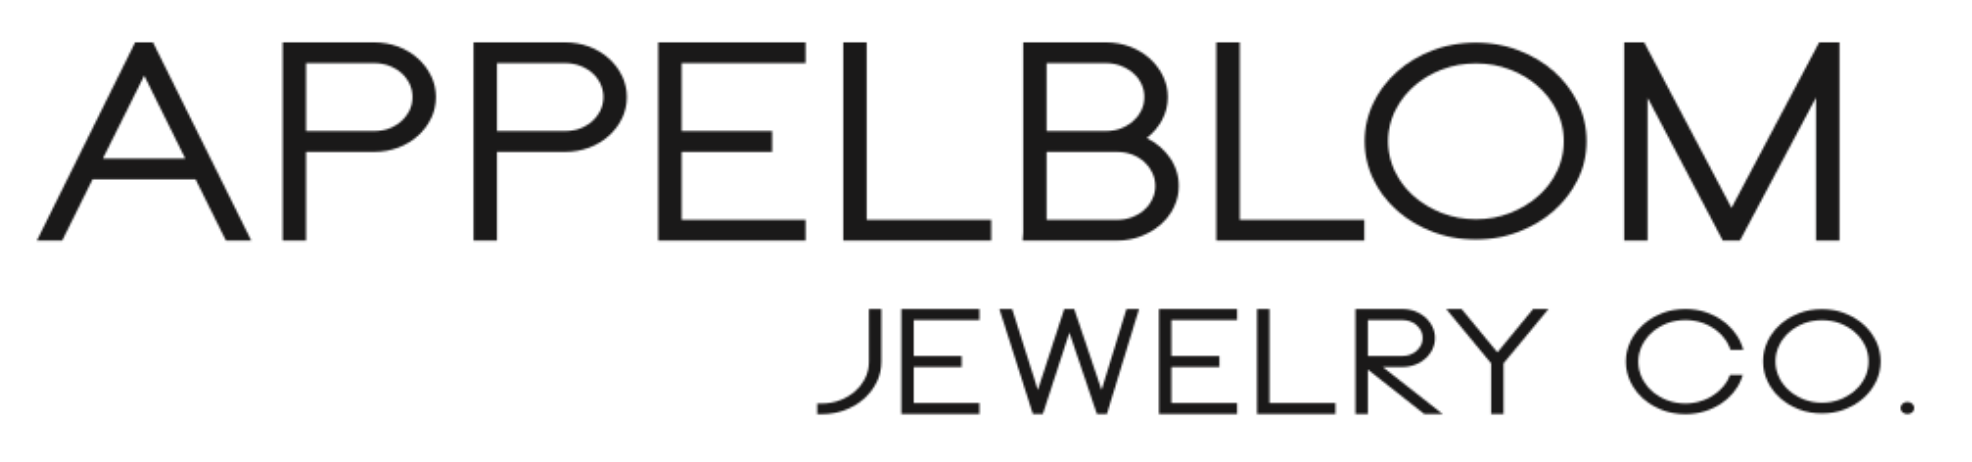 Appelblom Jewelry Co.